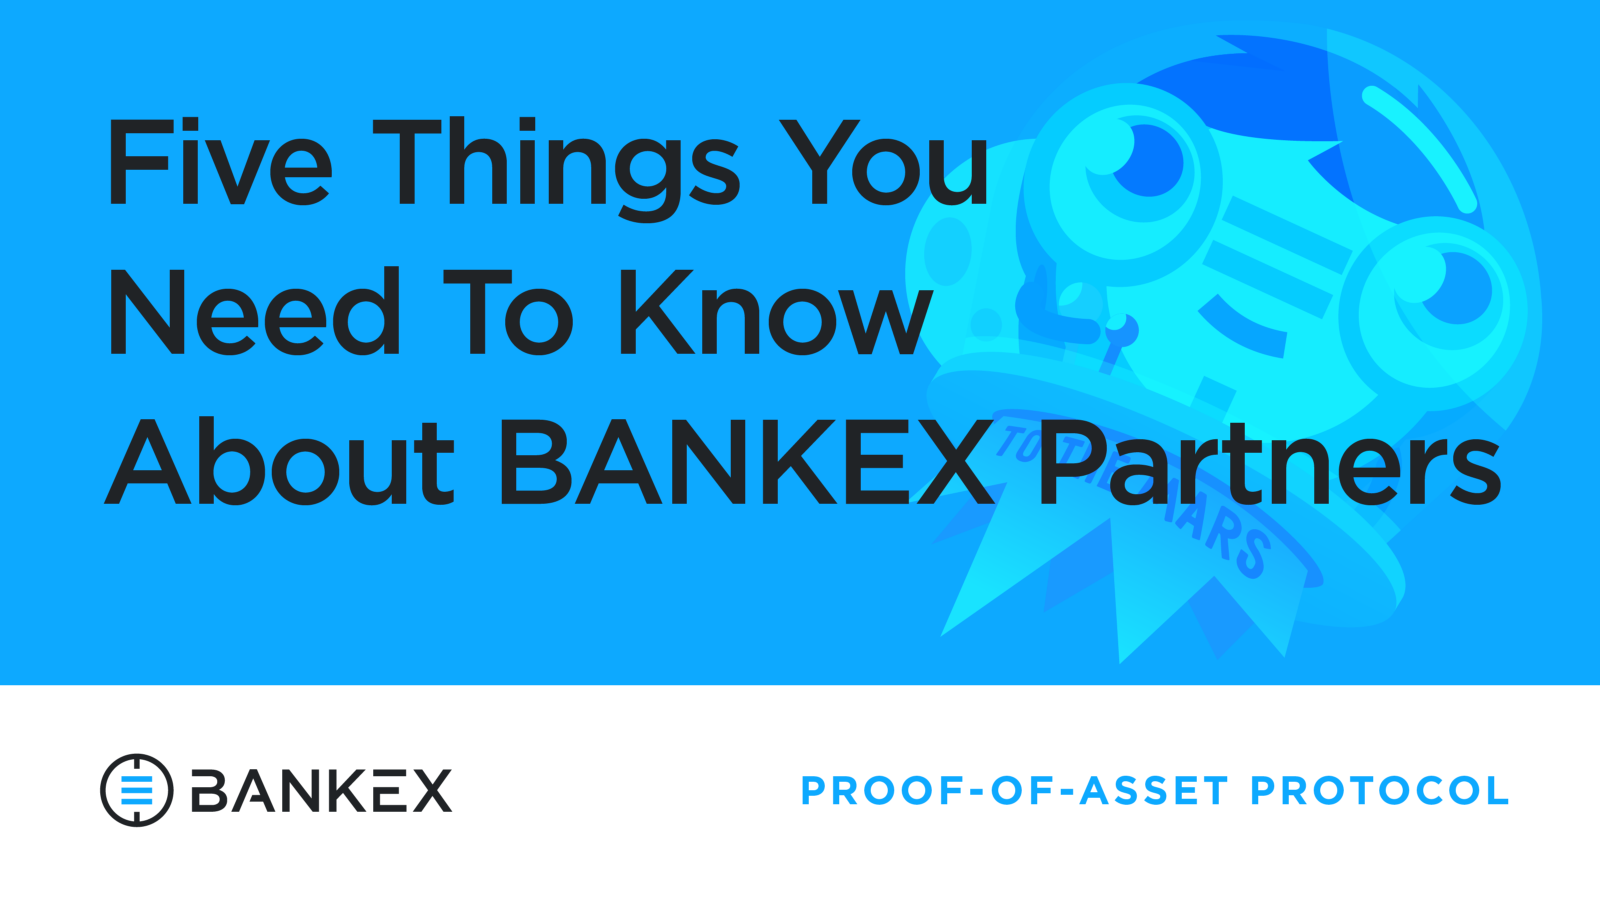 5 Things You Need To Know About BANKEX Partners BANKEX Proofof